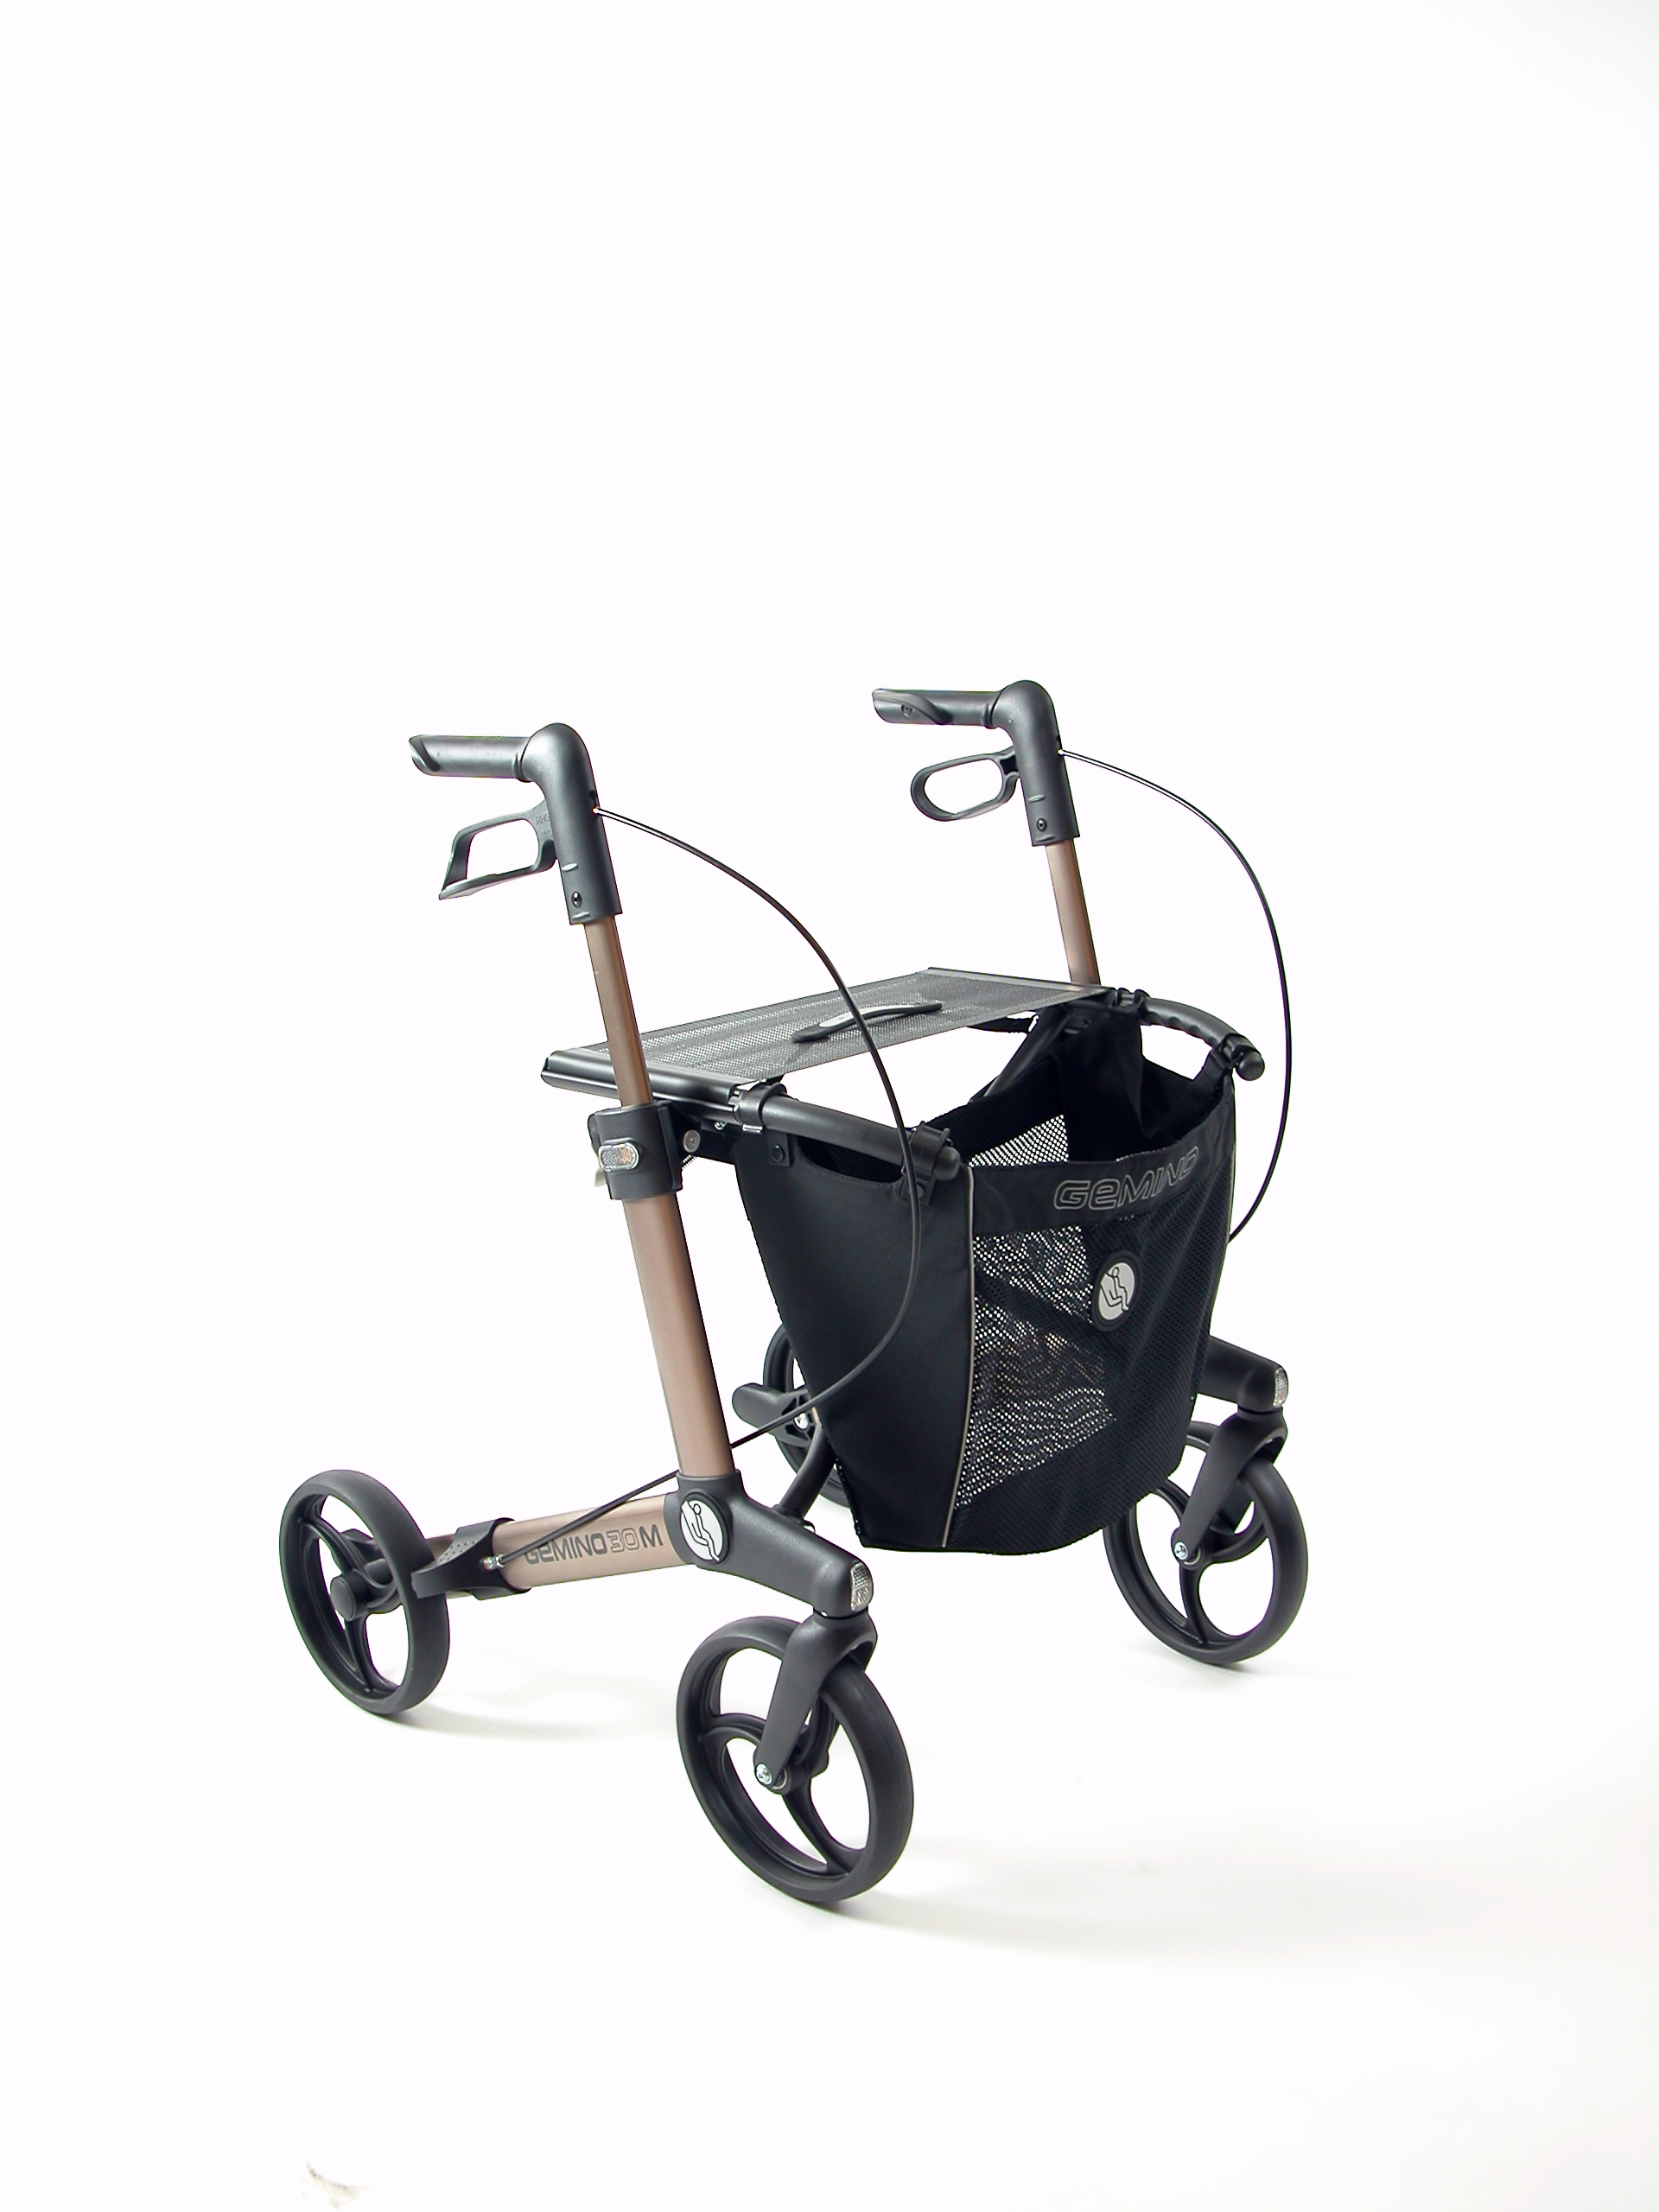 Gemino 30 M rollator van Sunrise Medical in Champagne